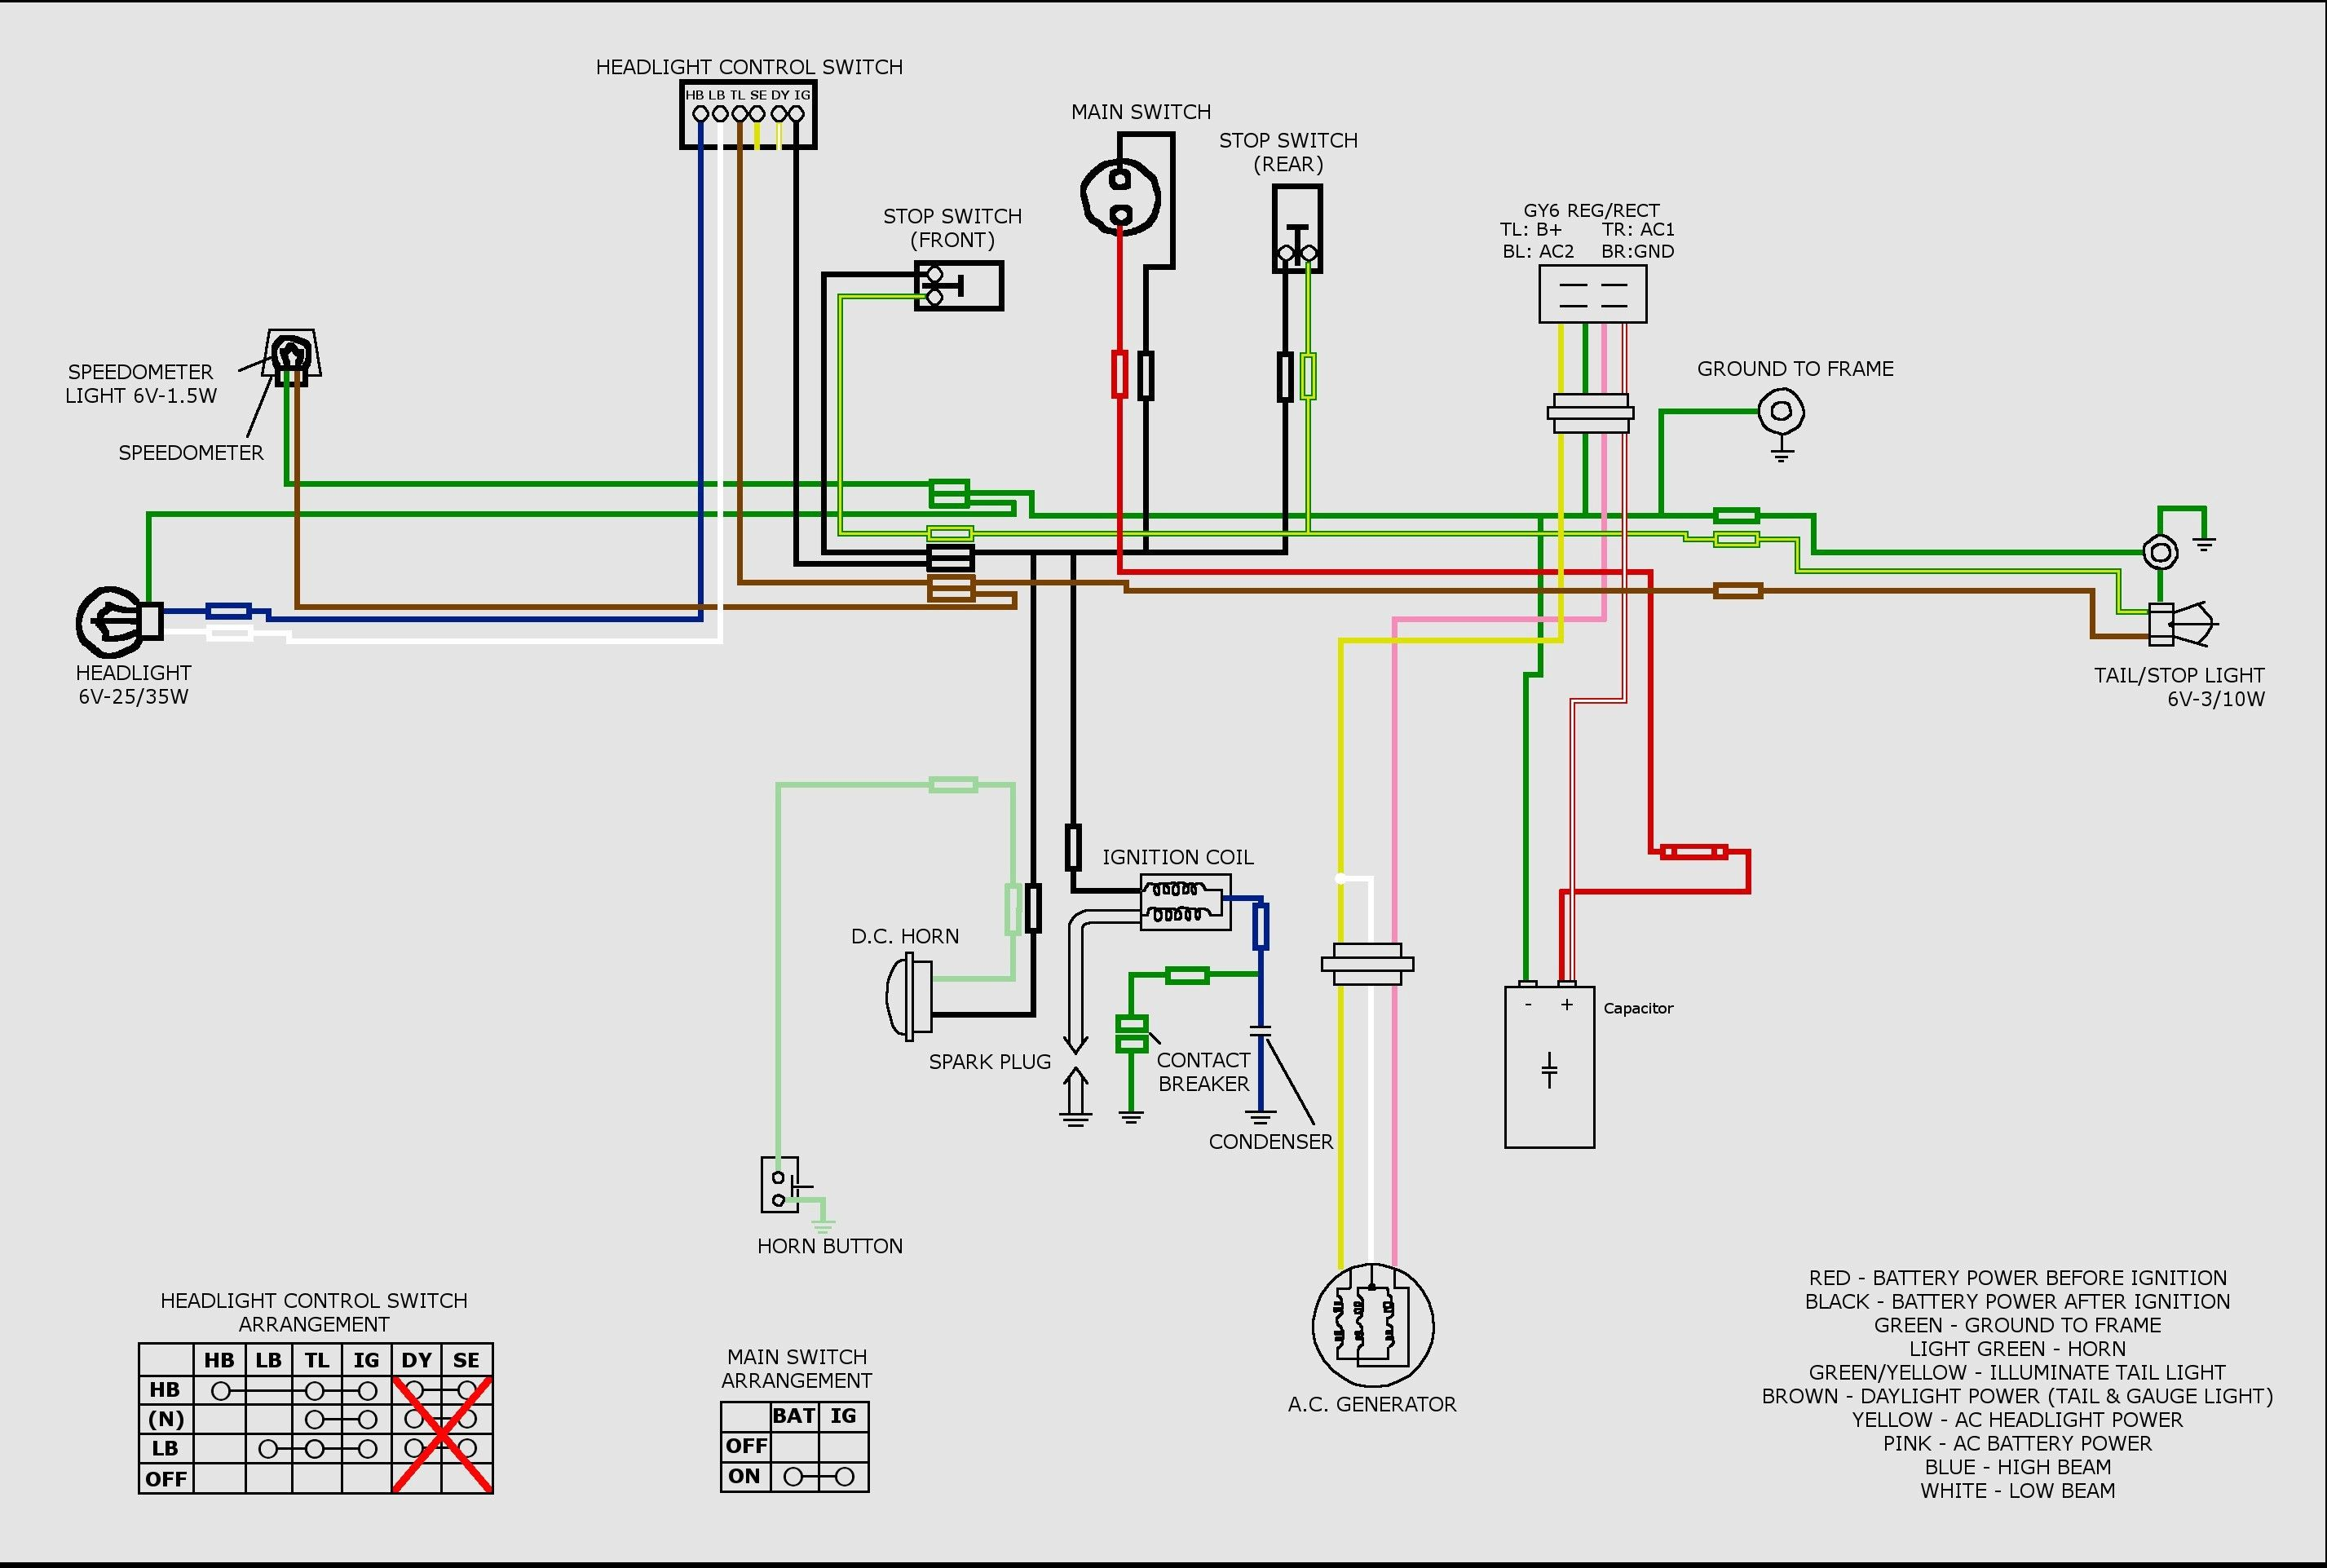 Gx 150 Wiring Diagram - Car Monitor Wiring Diagram for Wiring Diagram  SchematicsWiring Diagram Schematics